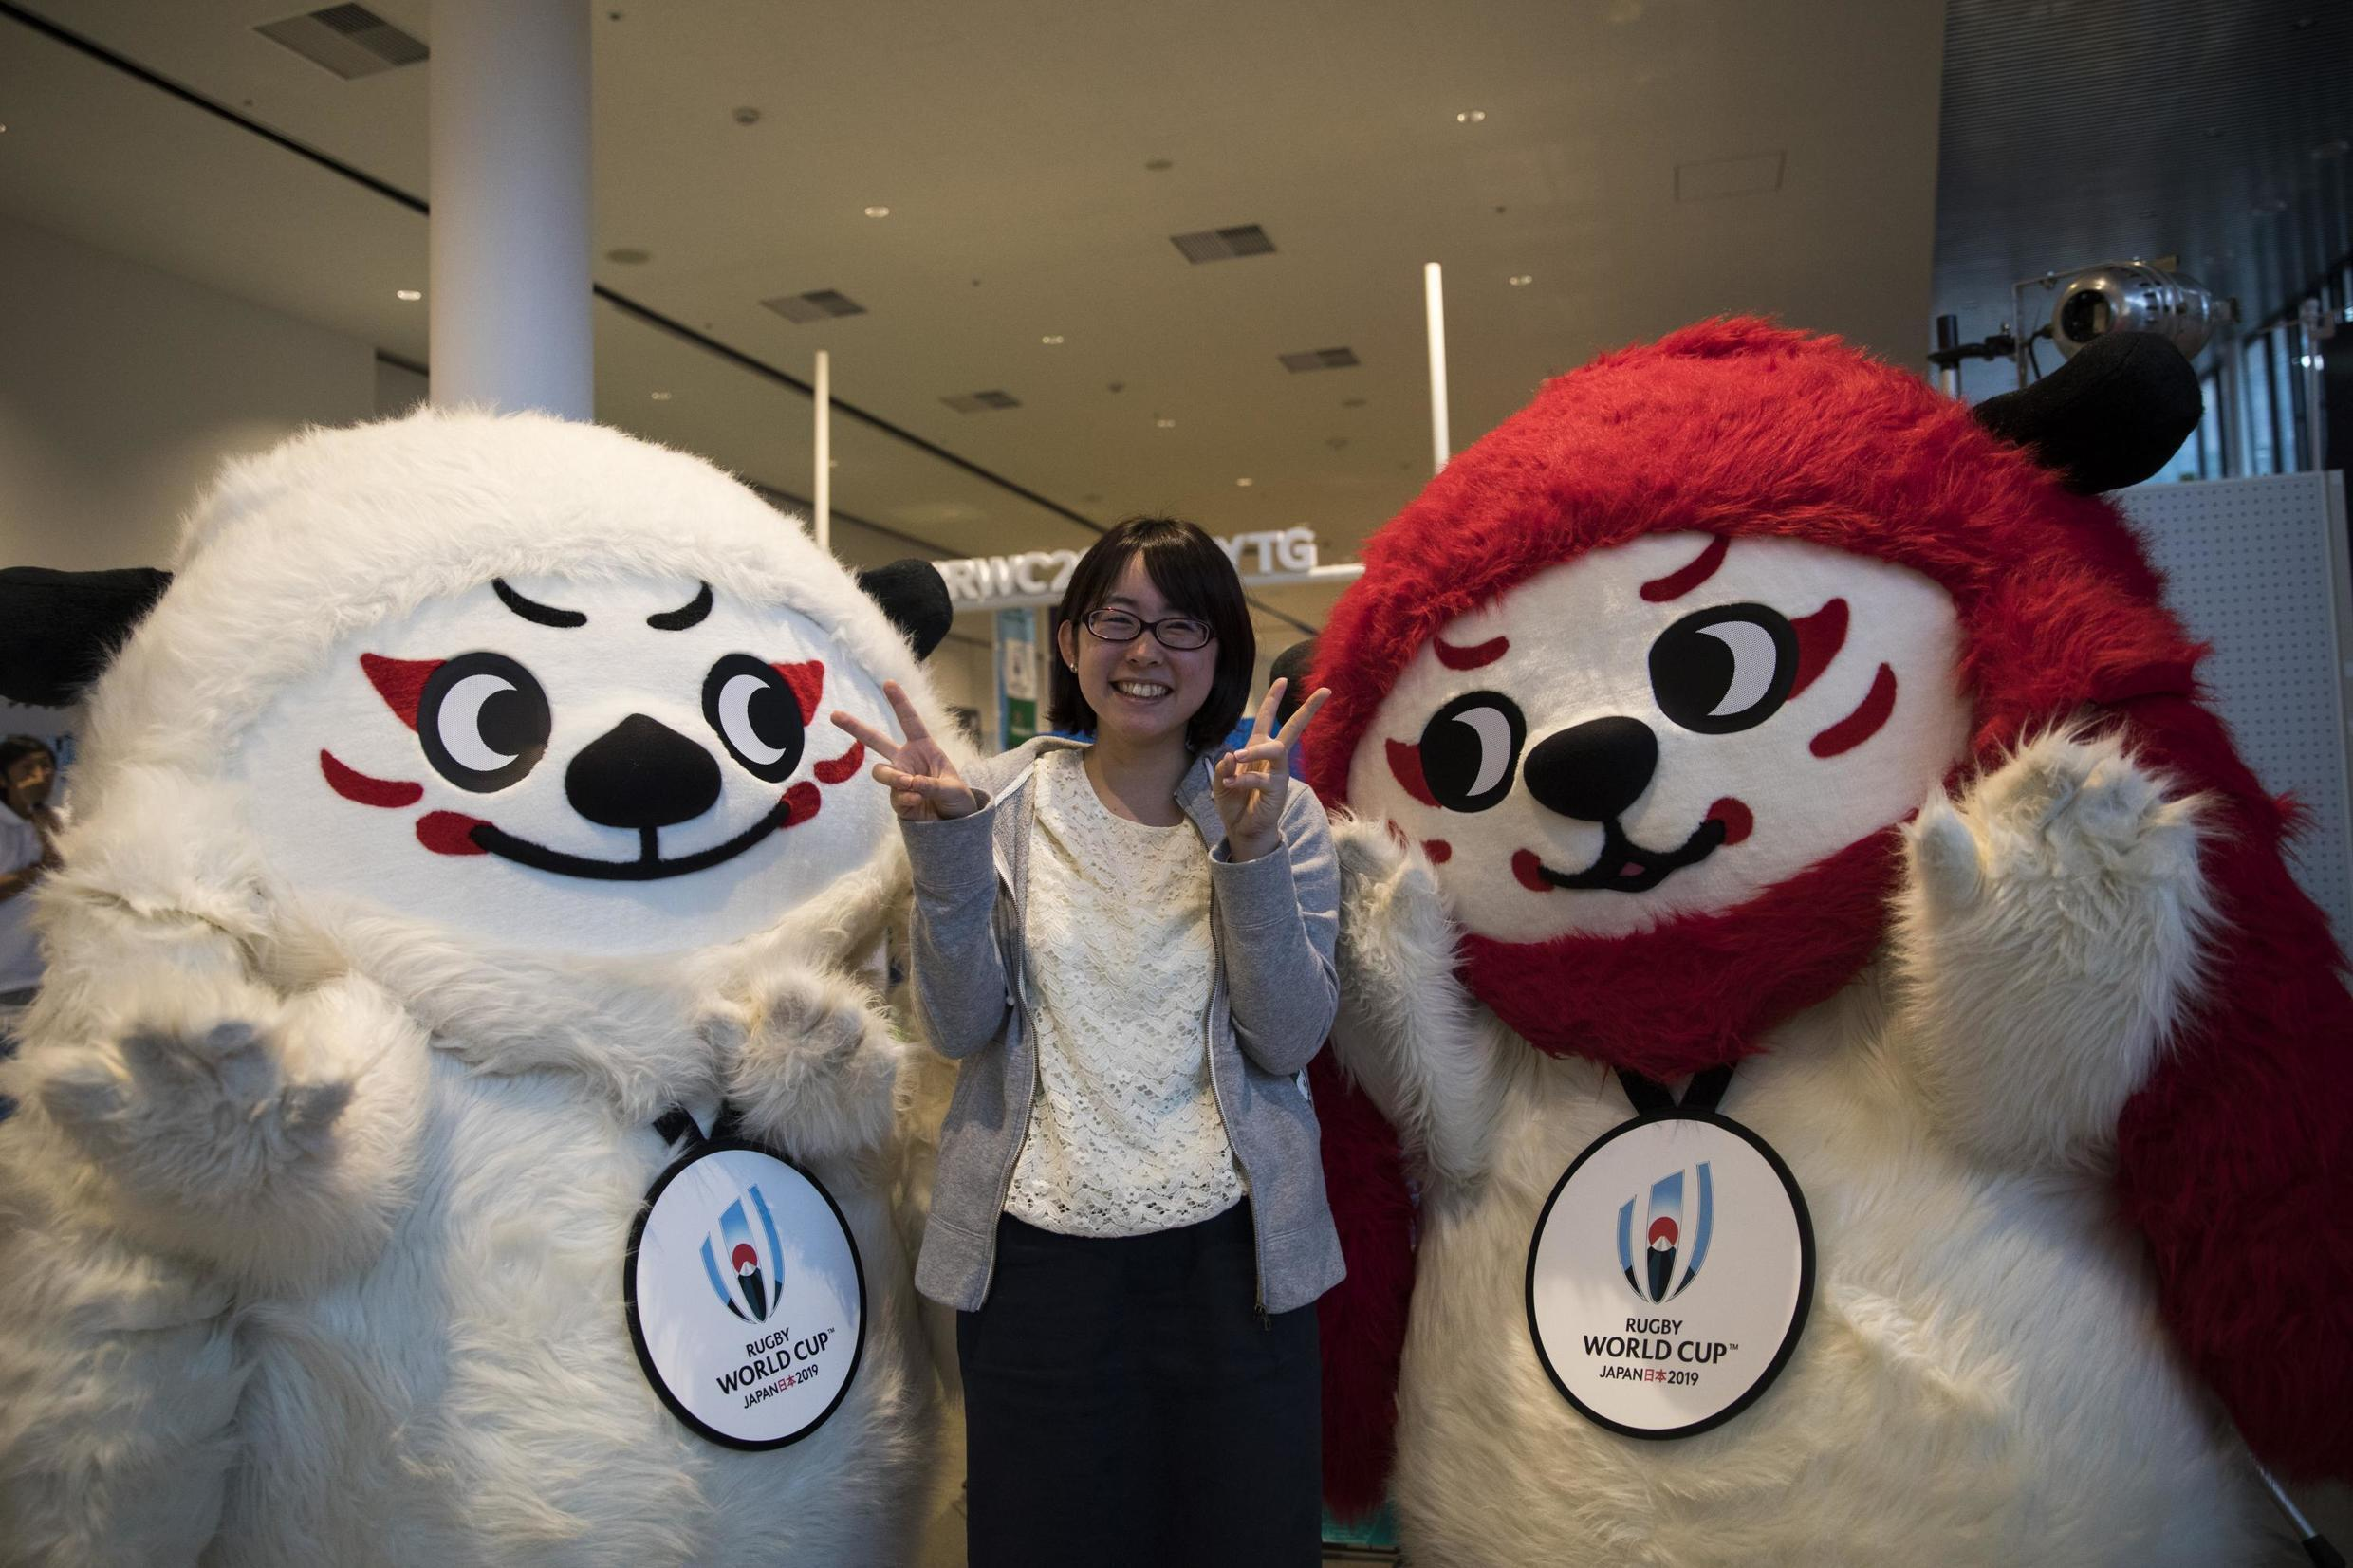 Mascots Ren (left) and G (right) will feature during the six week rugby world cup in Japan.